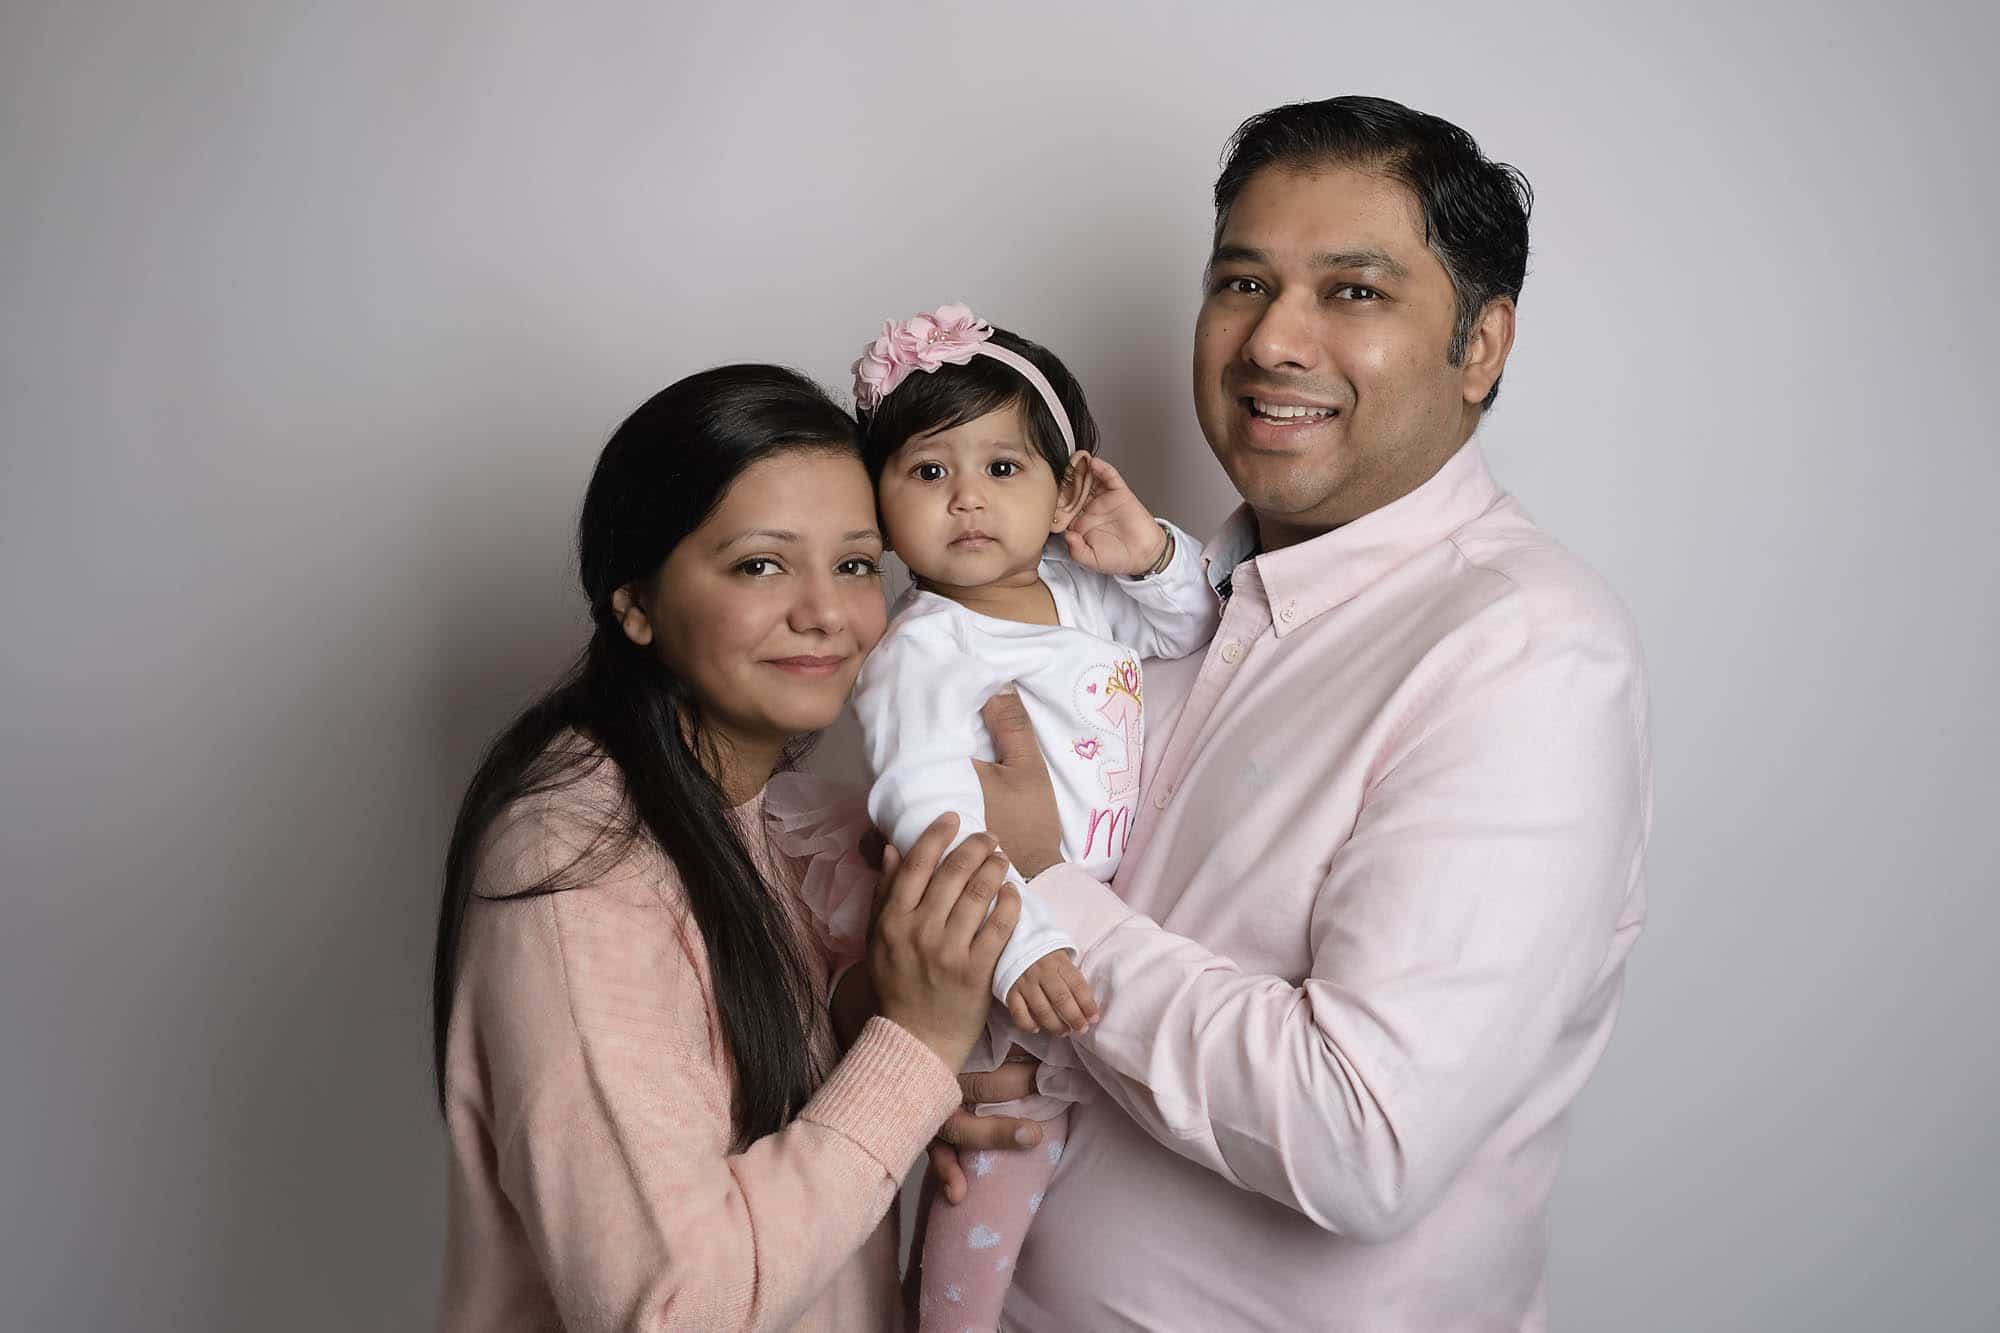 family image taken by family photography manchester